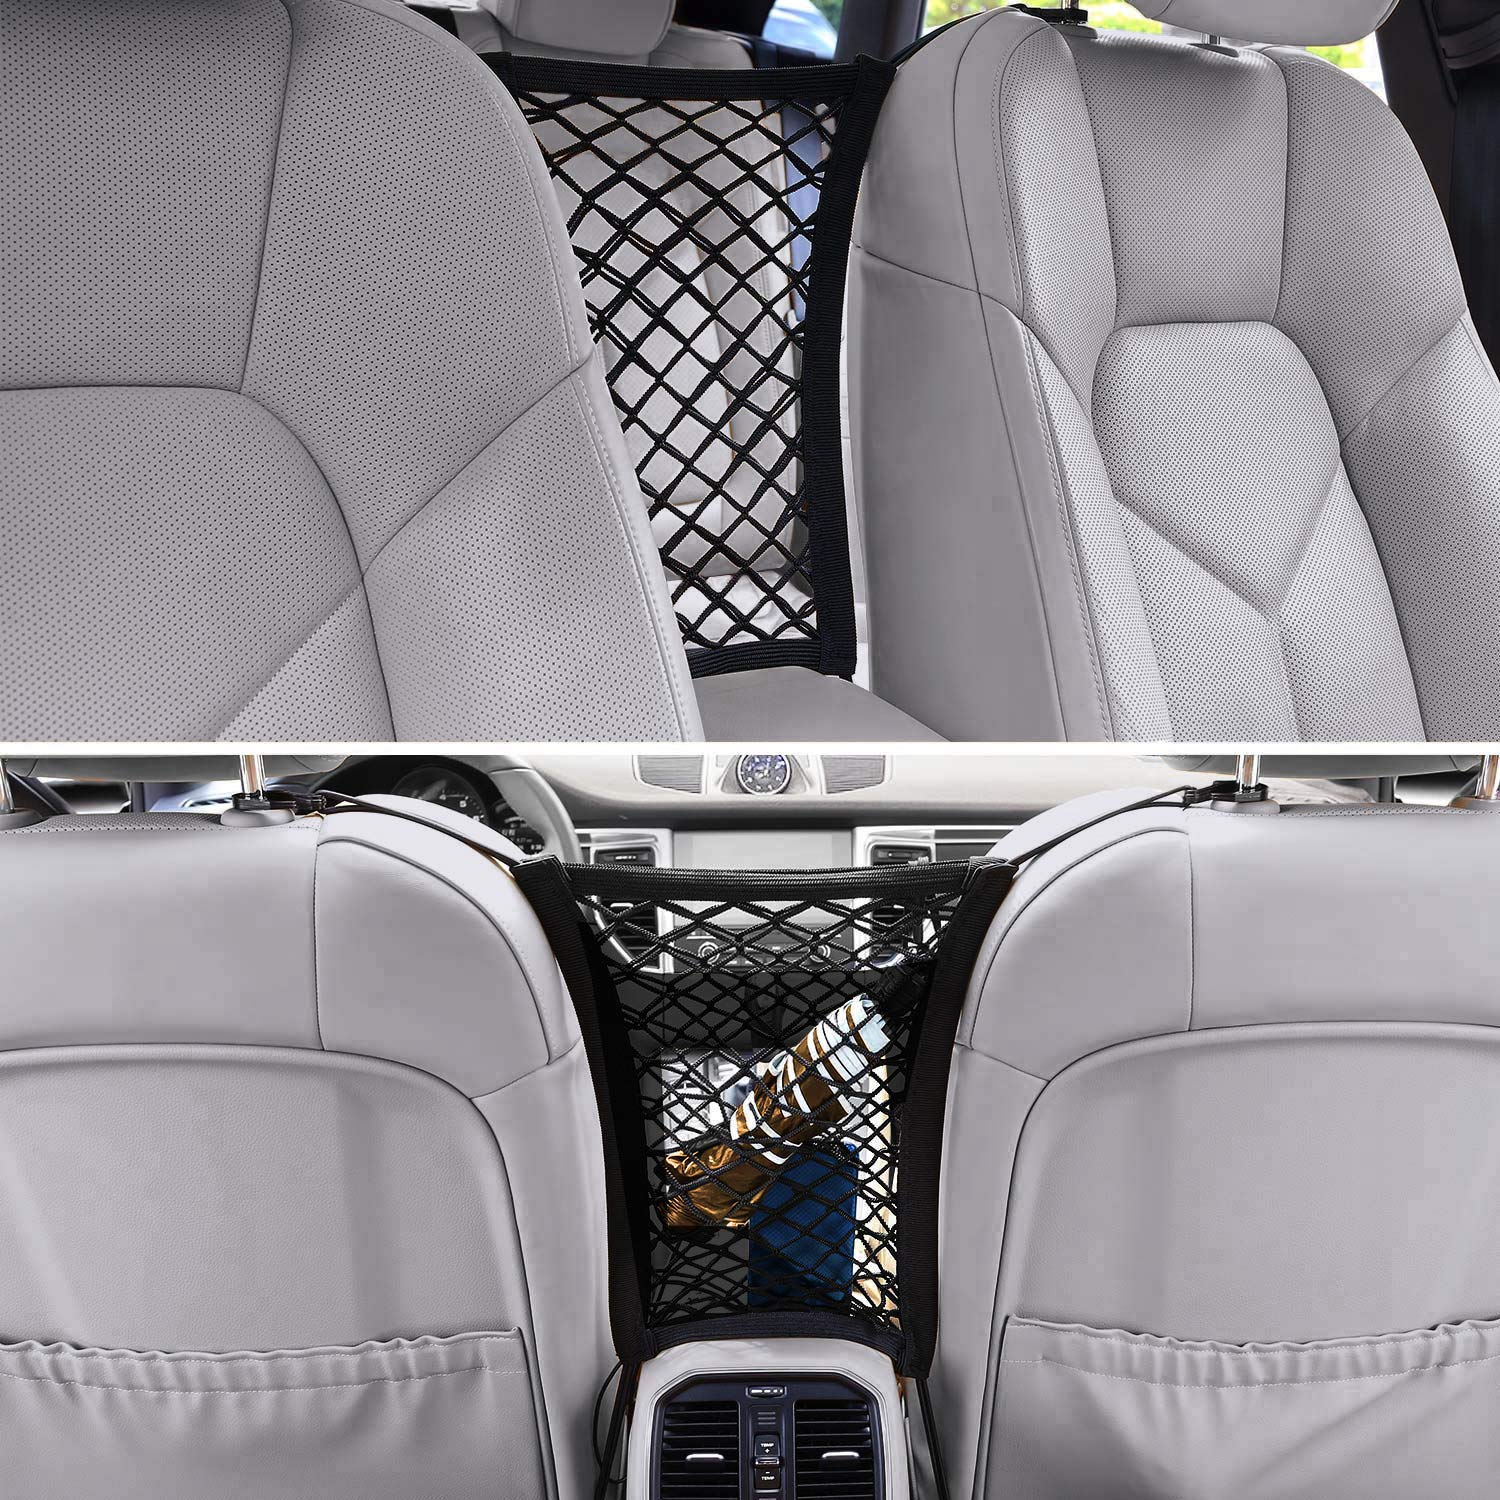 Drive Safe with Children and Pets DriveSound Dog Car Barrier Net Organizer Baby Storage Back Seat Stretchable Front Seat Pet Barrier Sedan SUV Minivan Pickup Truck